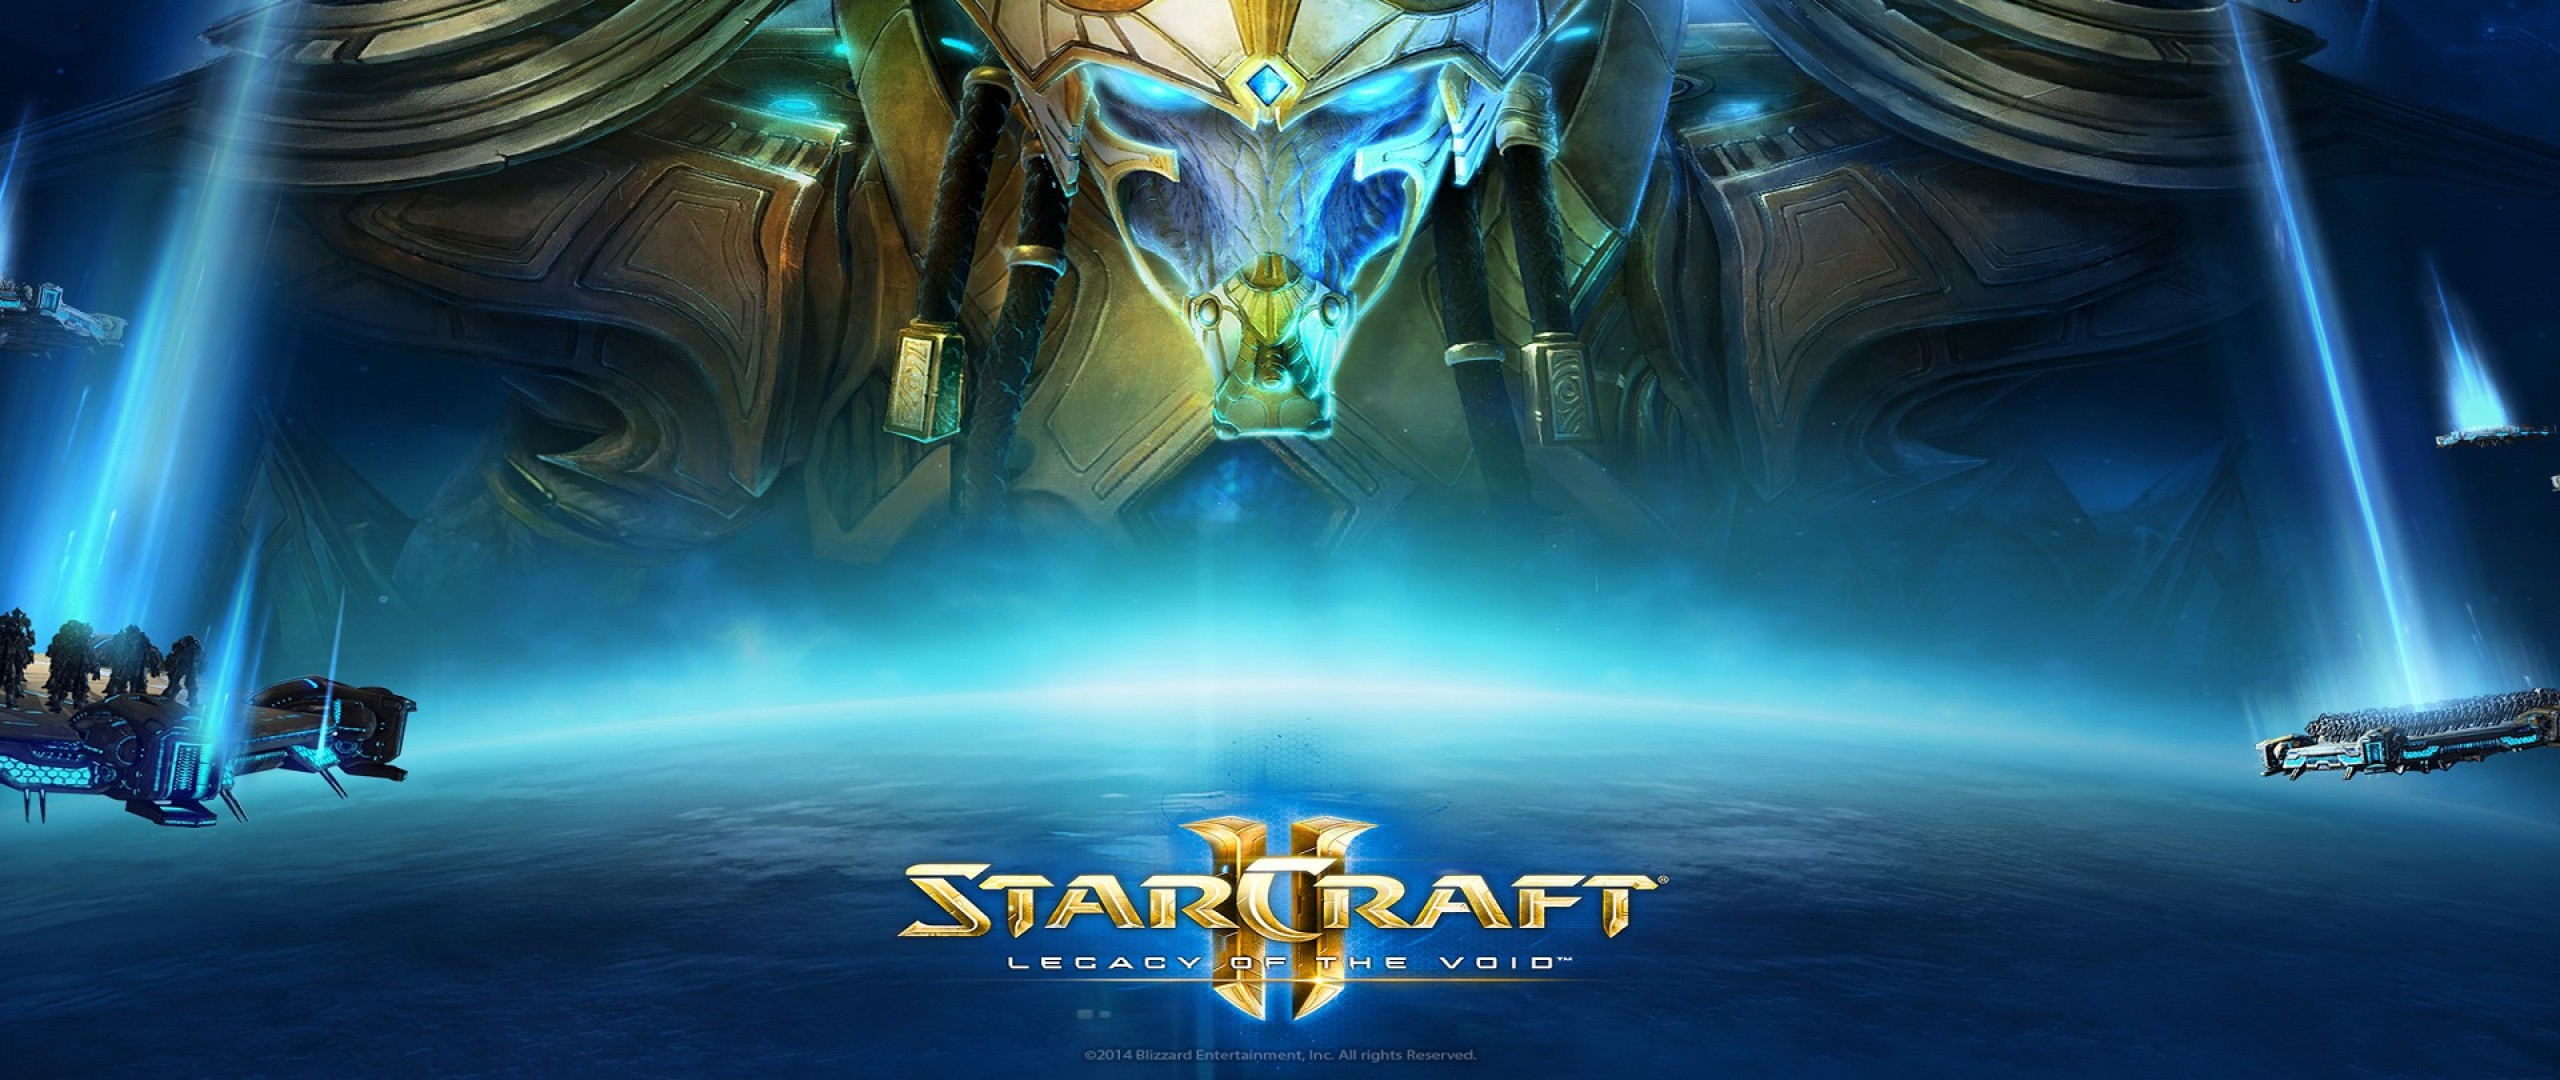 Res: 2560x1080, StarCraft II: Legacy of the Void HD Wallpapers 6 - 2560 X 1080